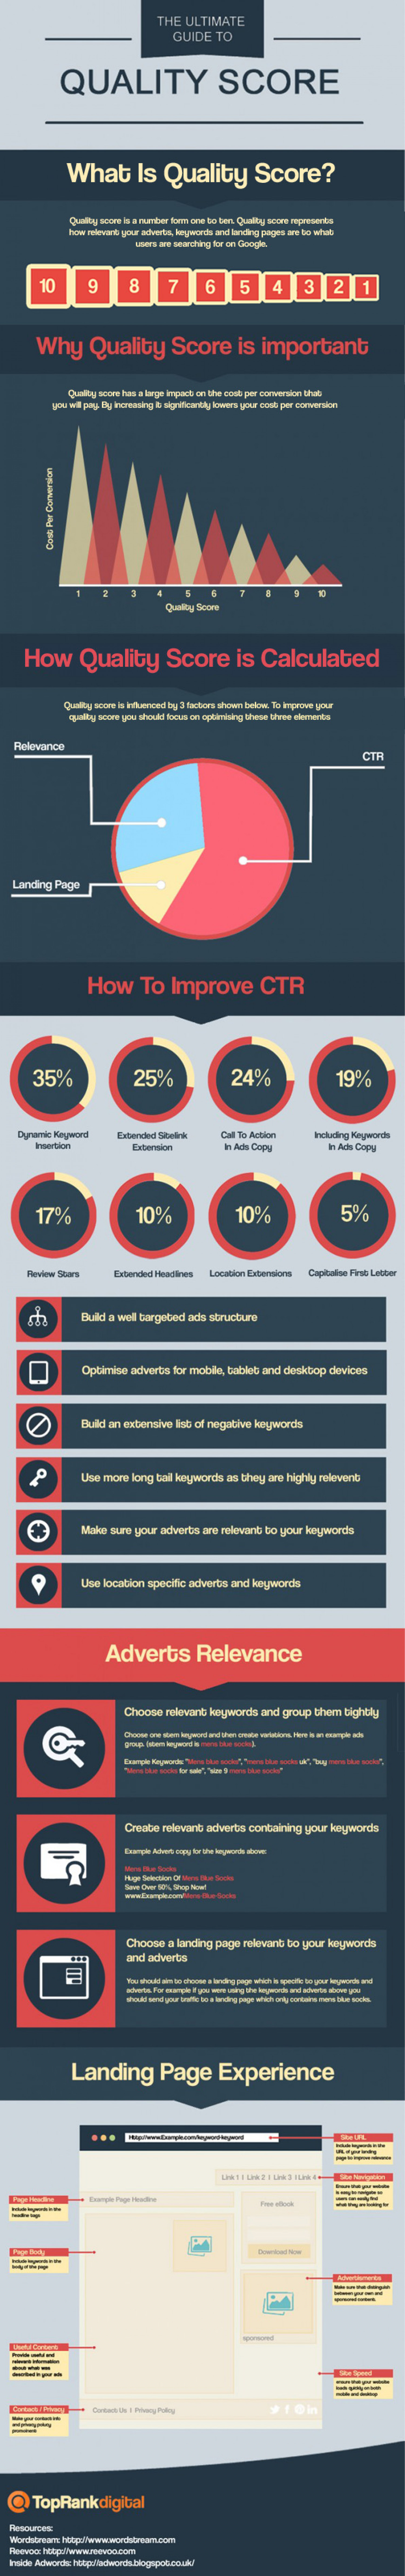 The ultimate guide to quality score Infographic